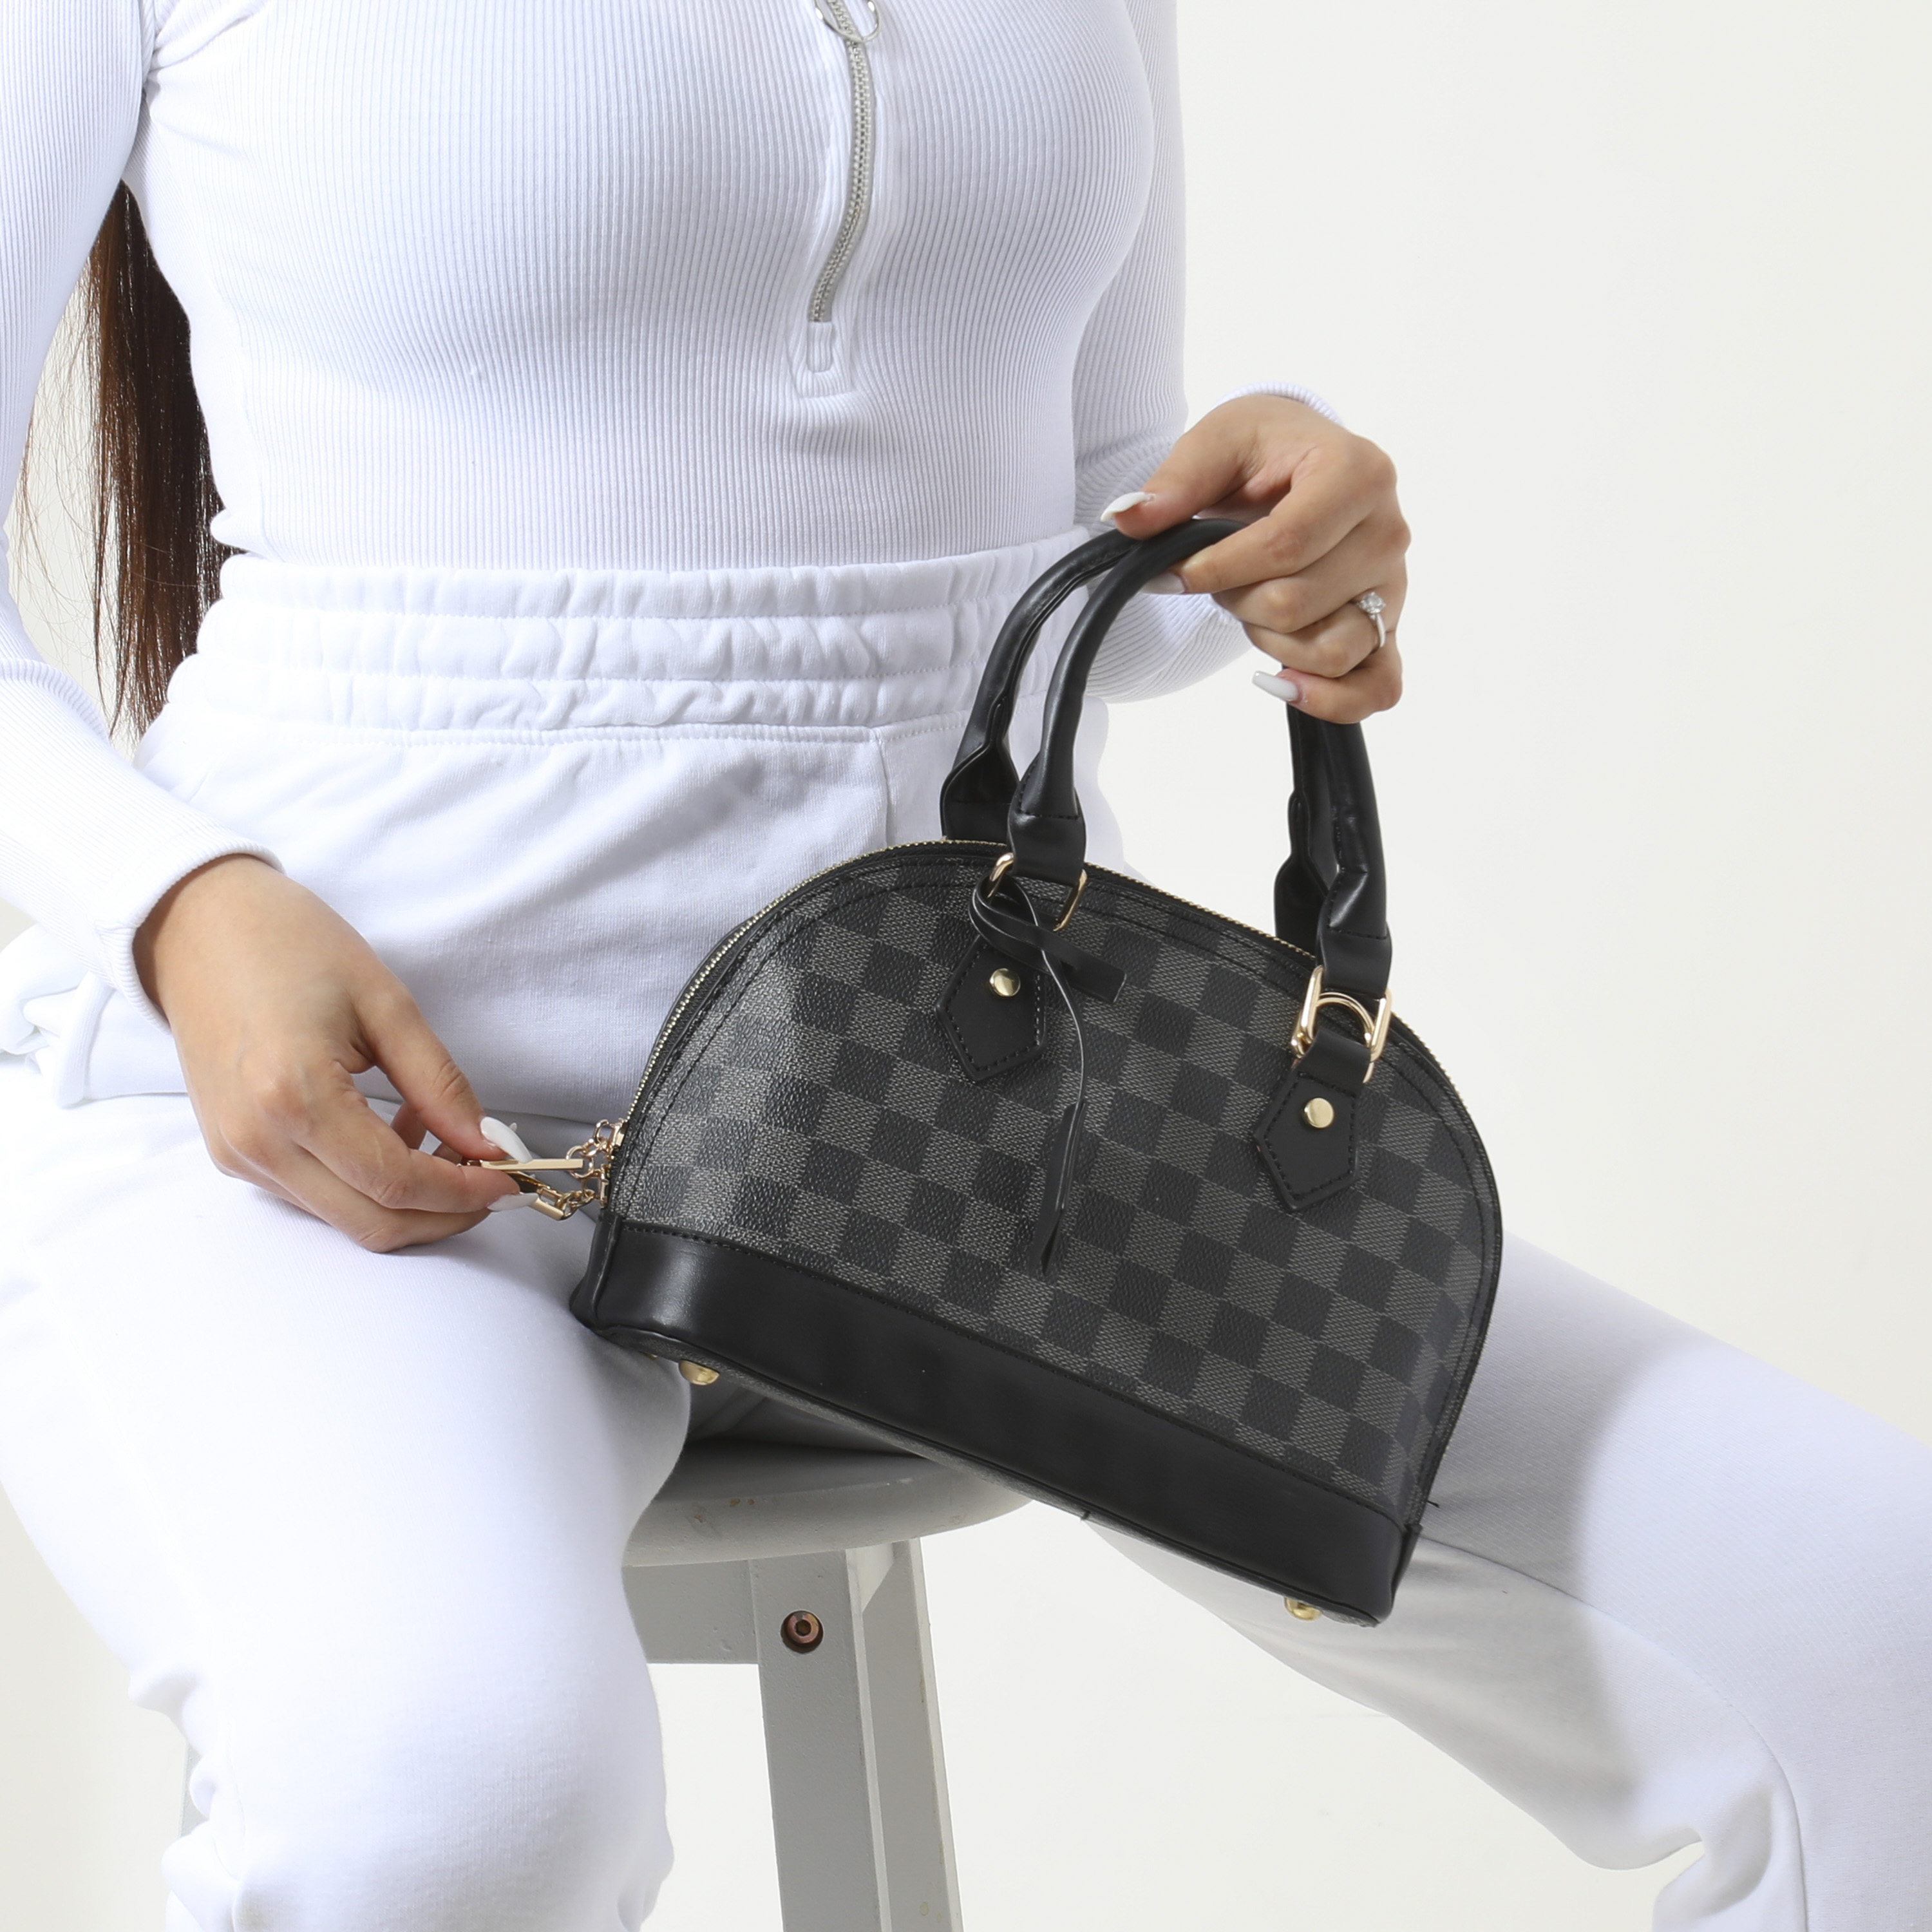 Checked Oval Handbag In Black Faux Leather